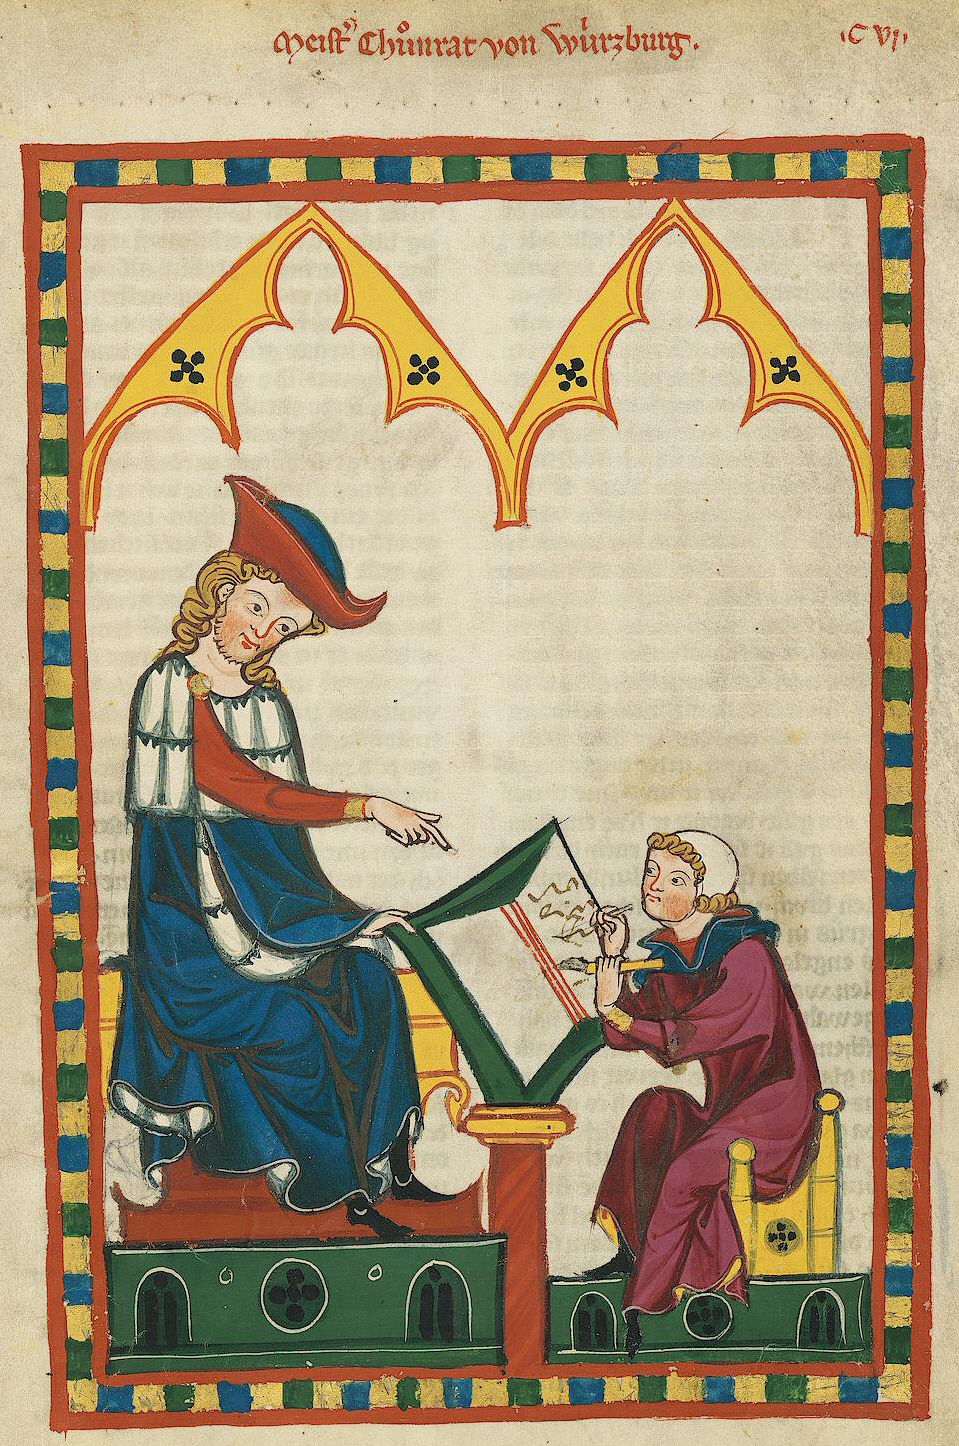 Portrait of Konrad von Würzburg from the [[Codex Manesse